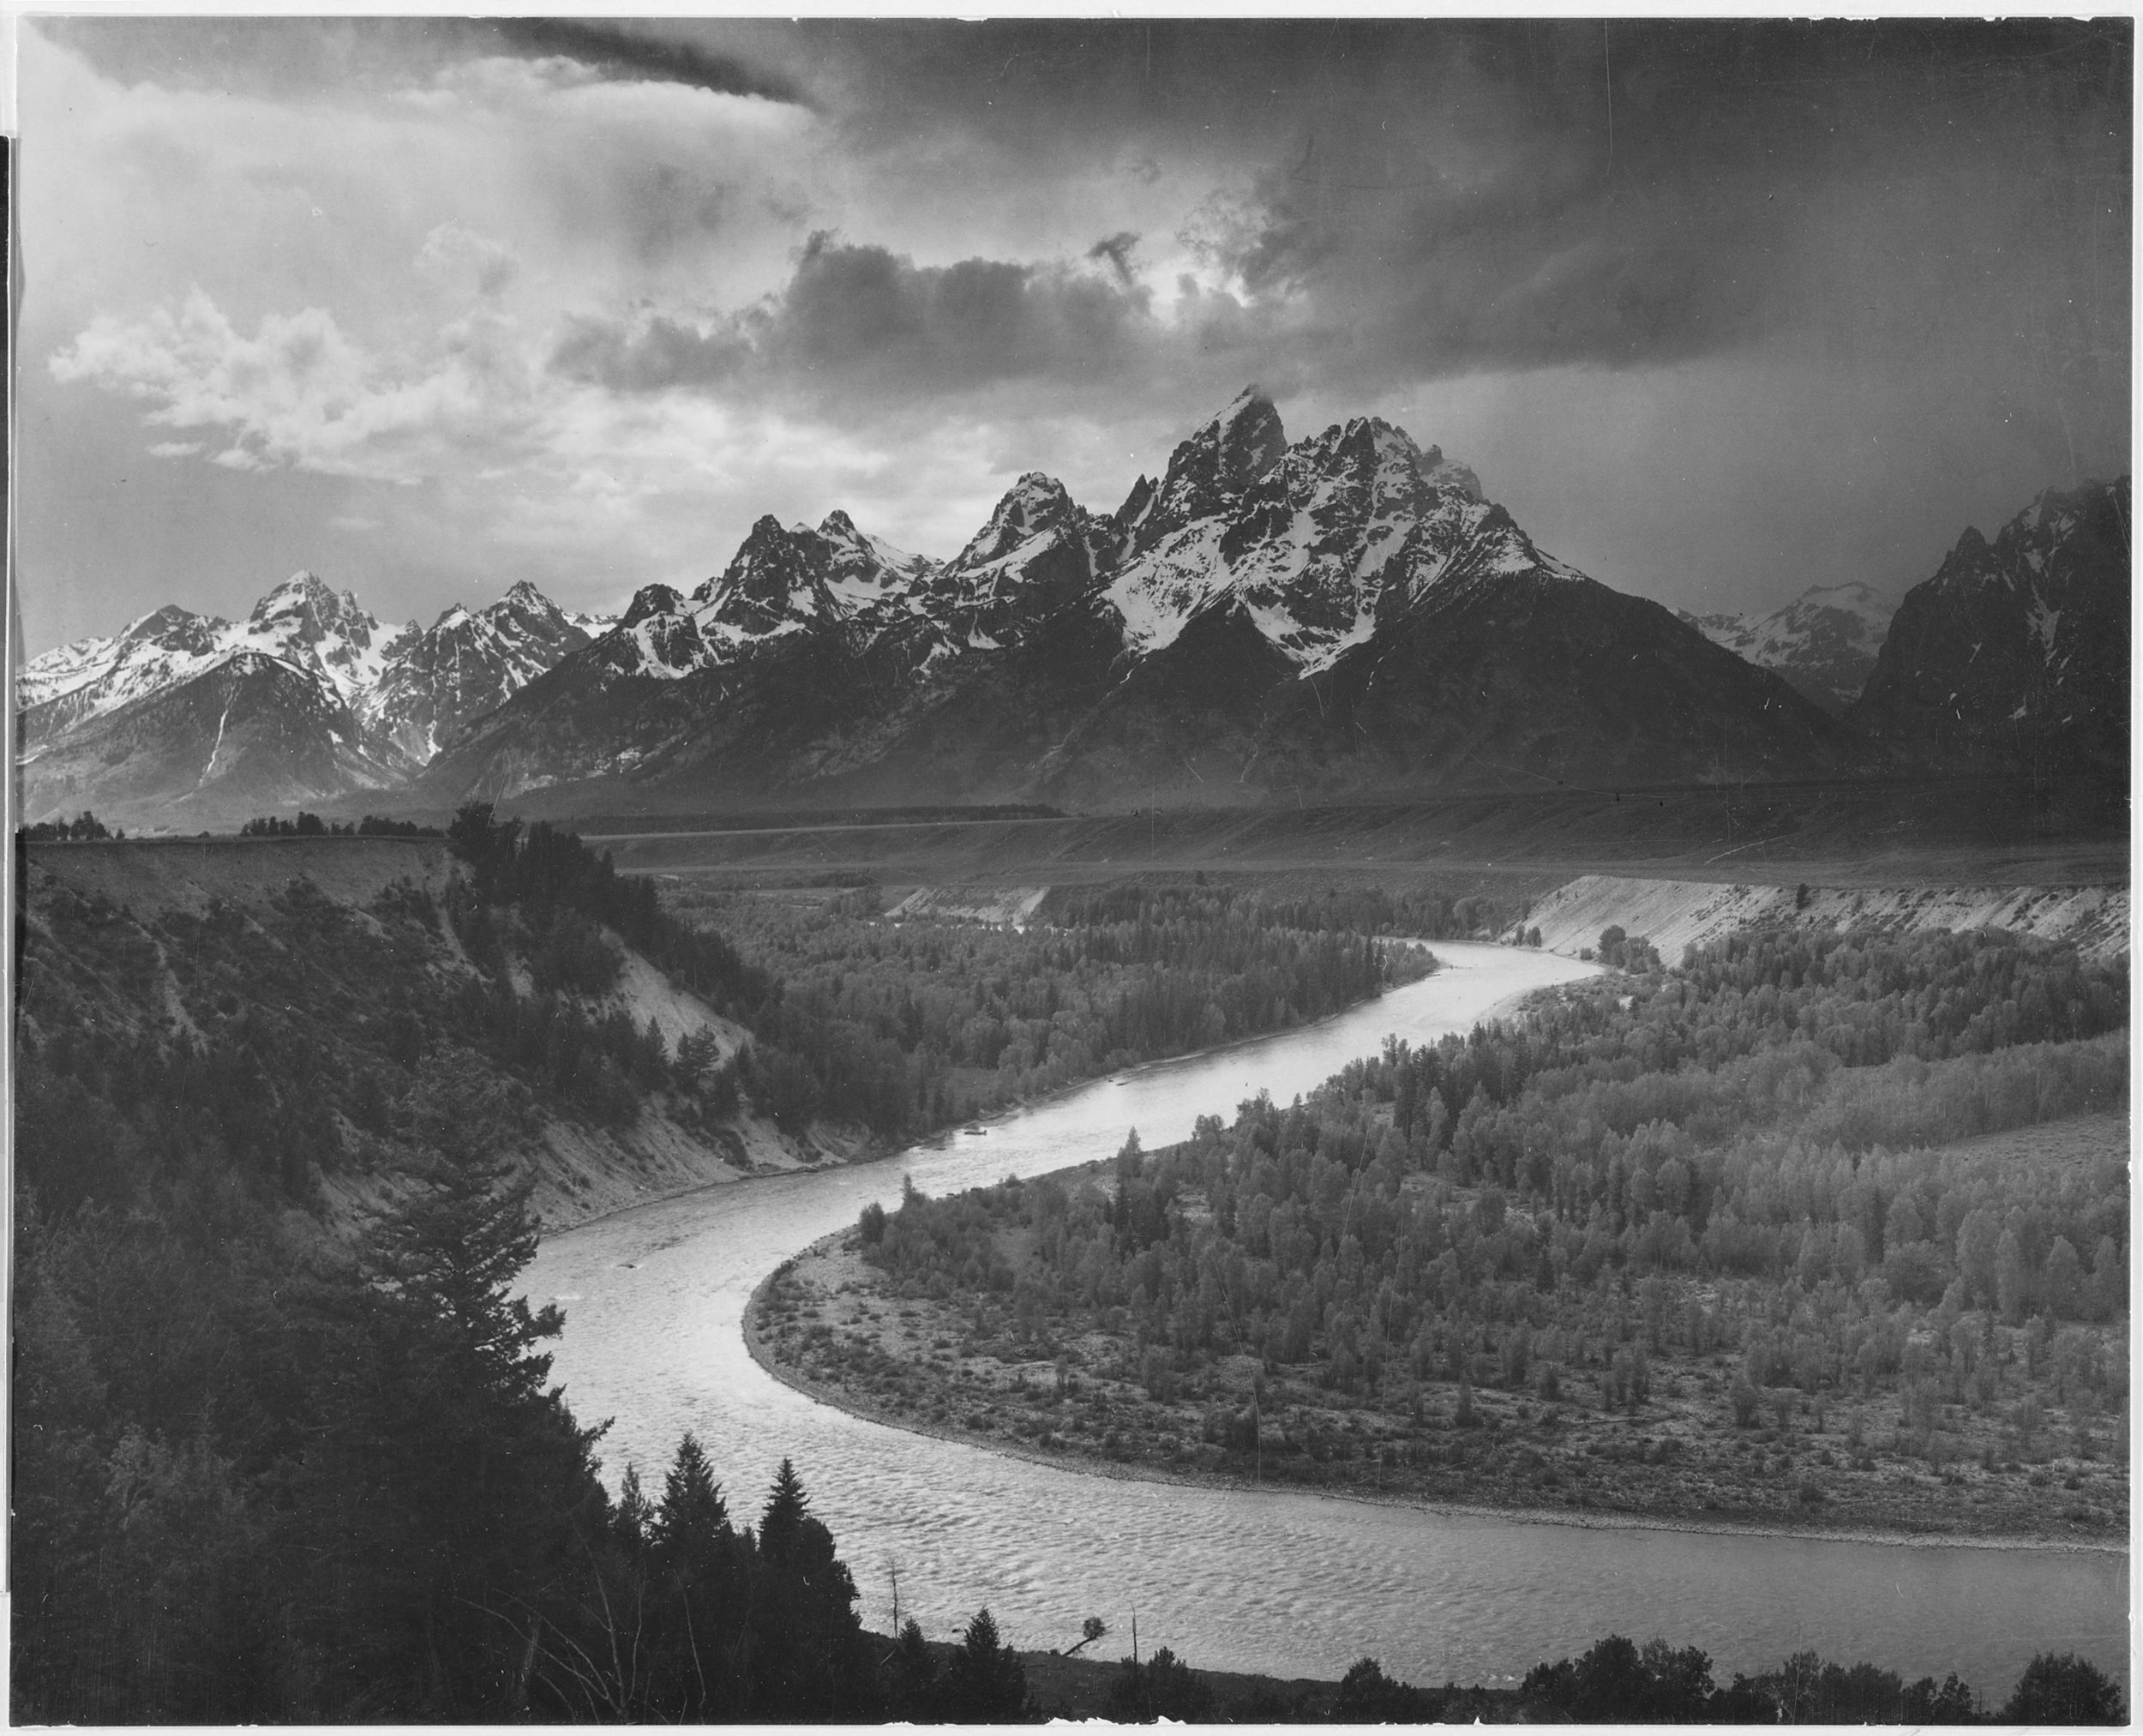 Fig 1. Ansel Adams, Tetons and Snake River, 1948. Silver Gelatin Print.